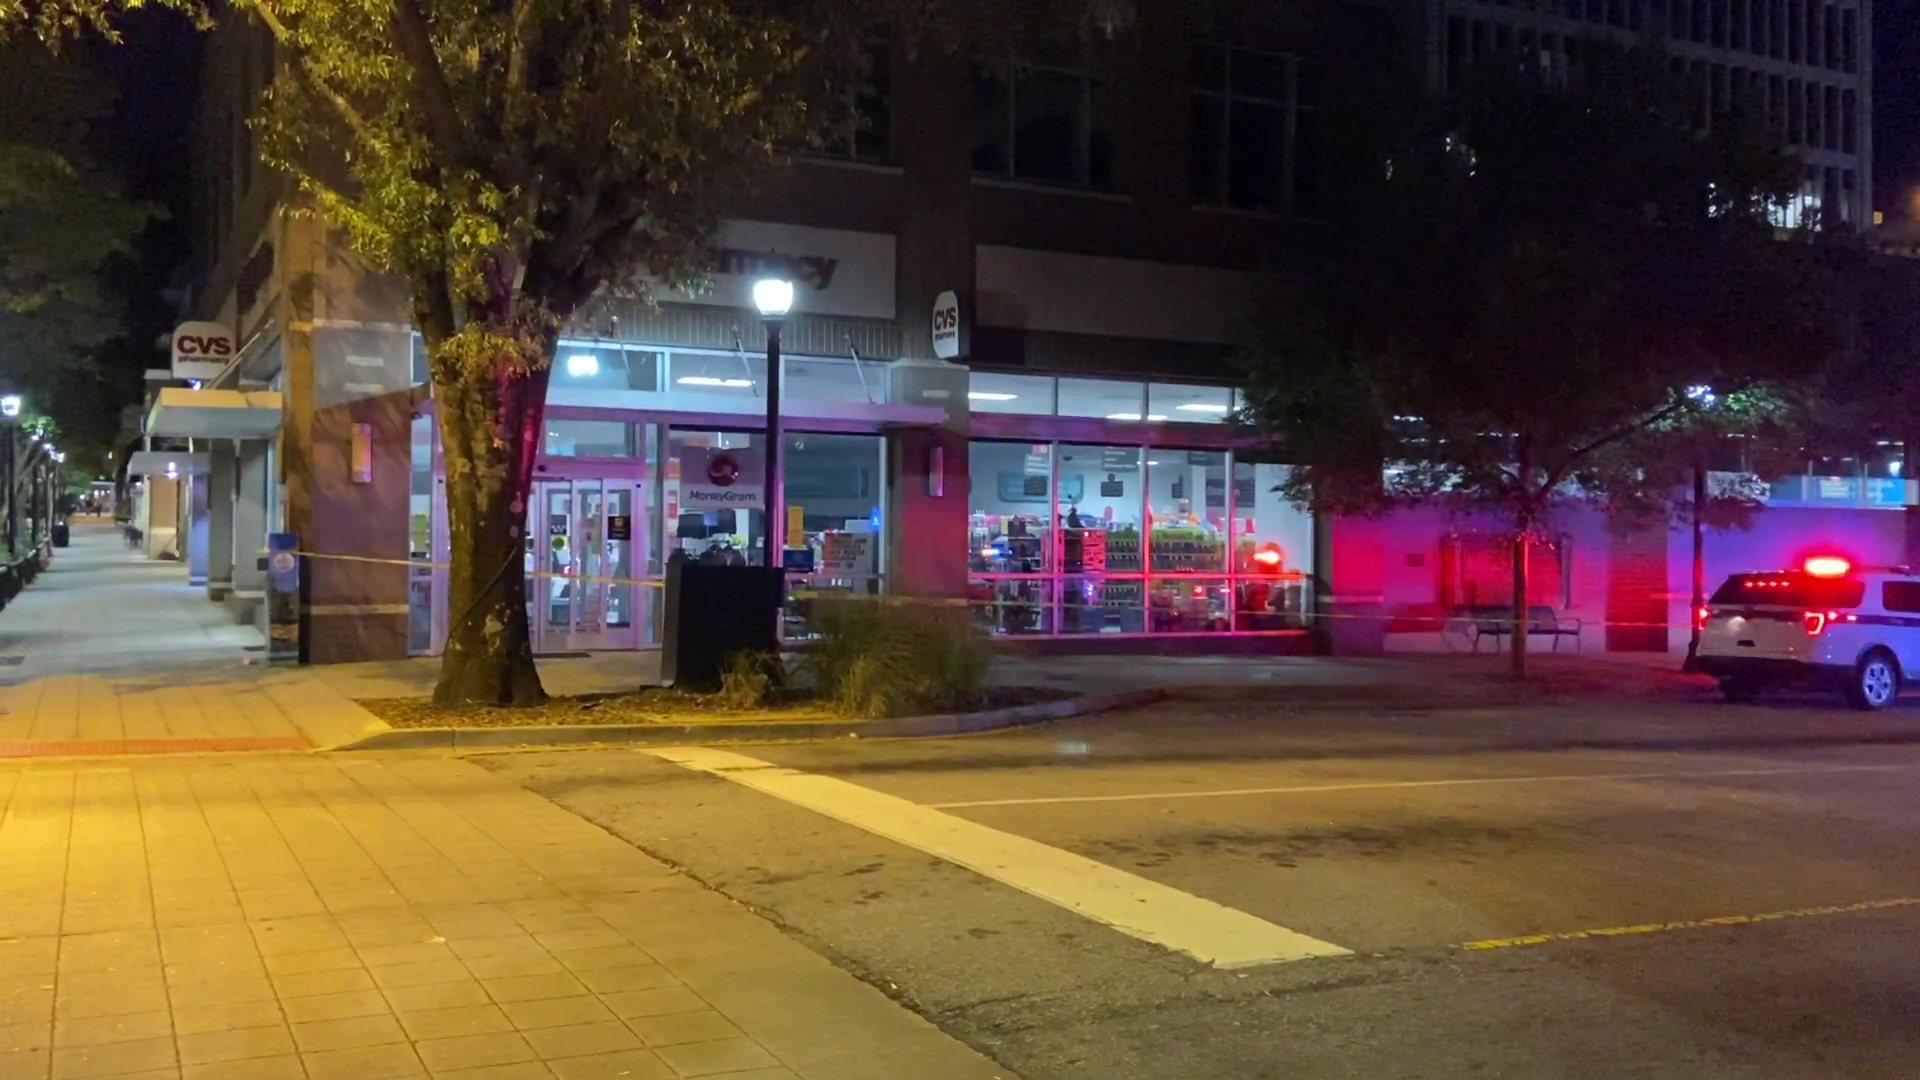 Police at scene of reported stabbing outside a CVS store at the corner of Main Street and McBee Avenue in downtown Greenville, October 1, 2020. (WSPA Photo)